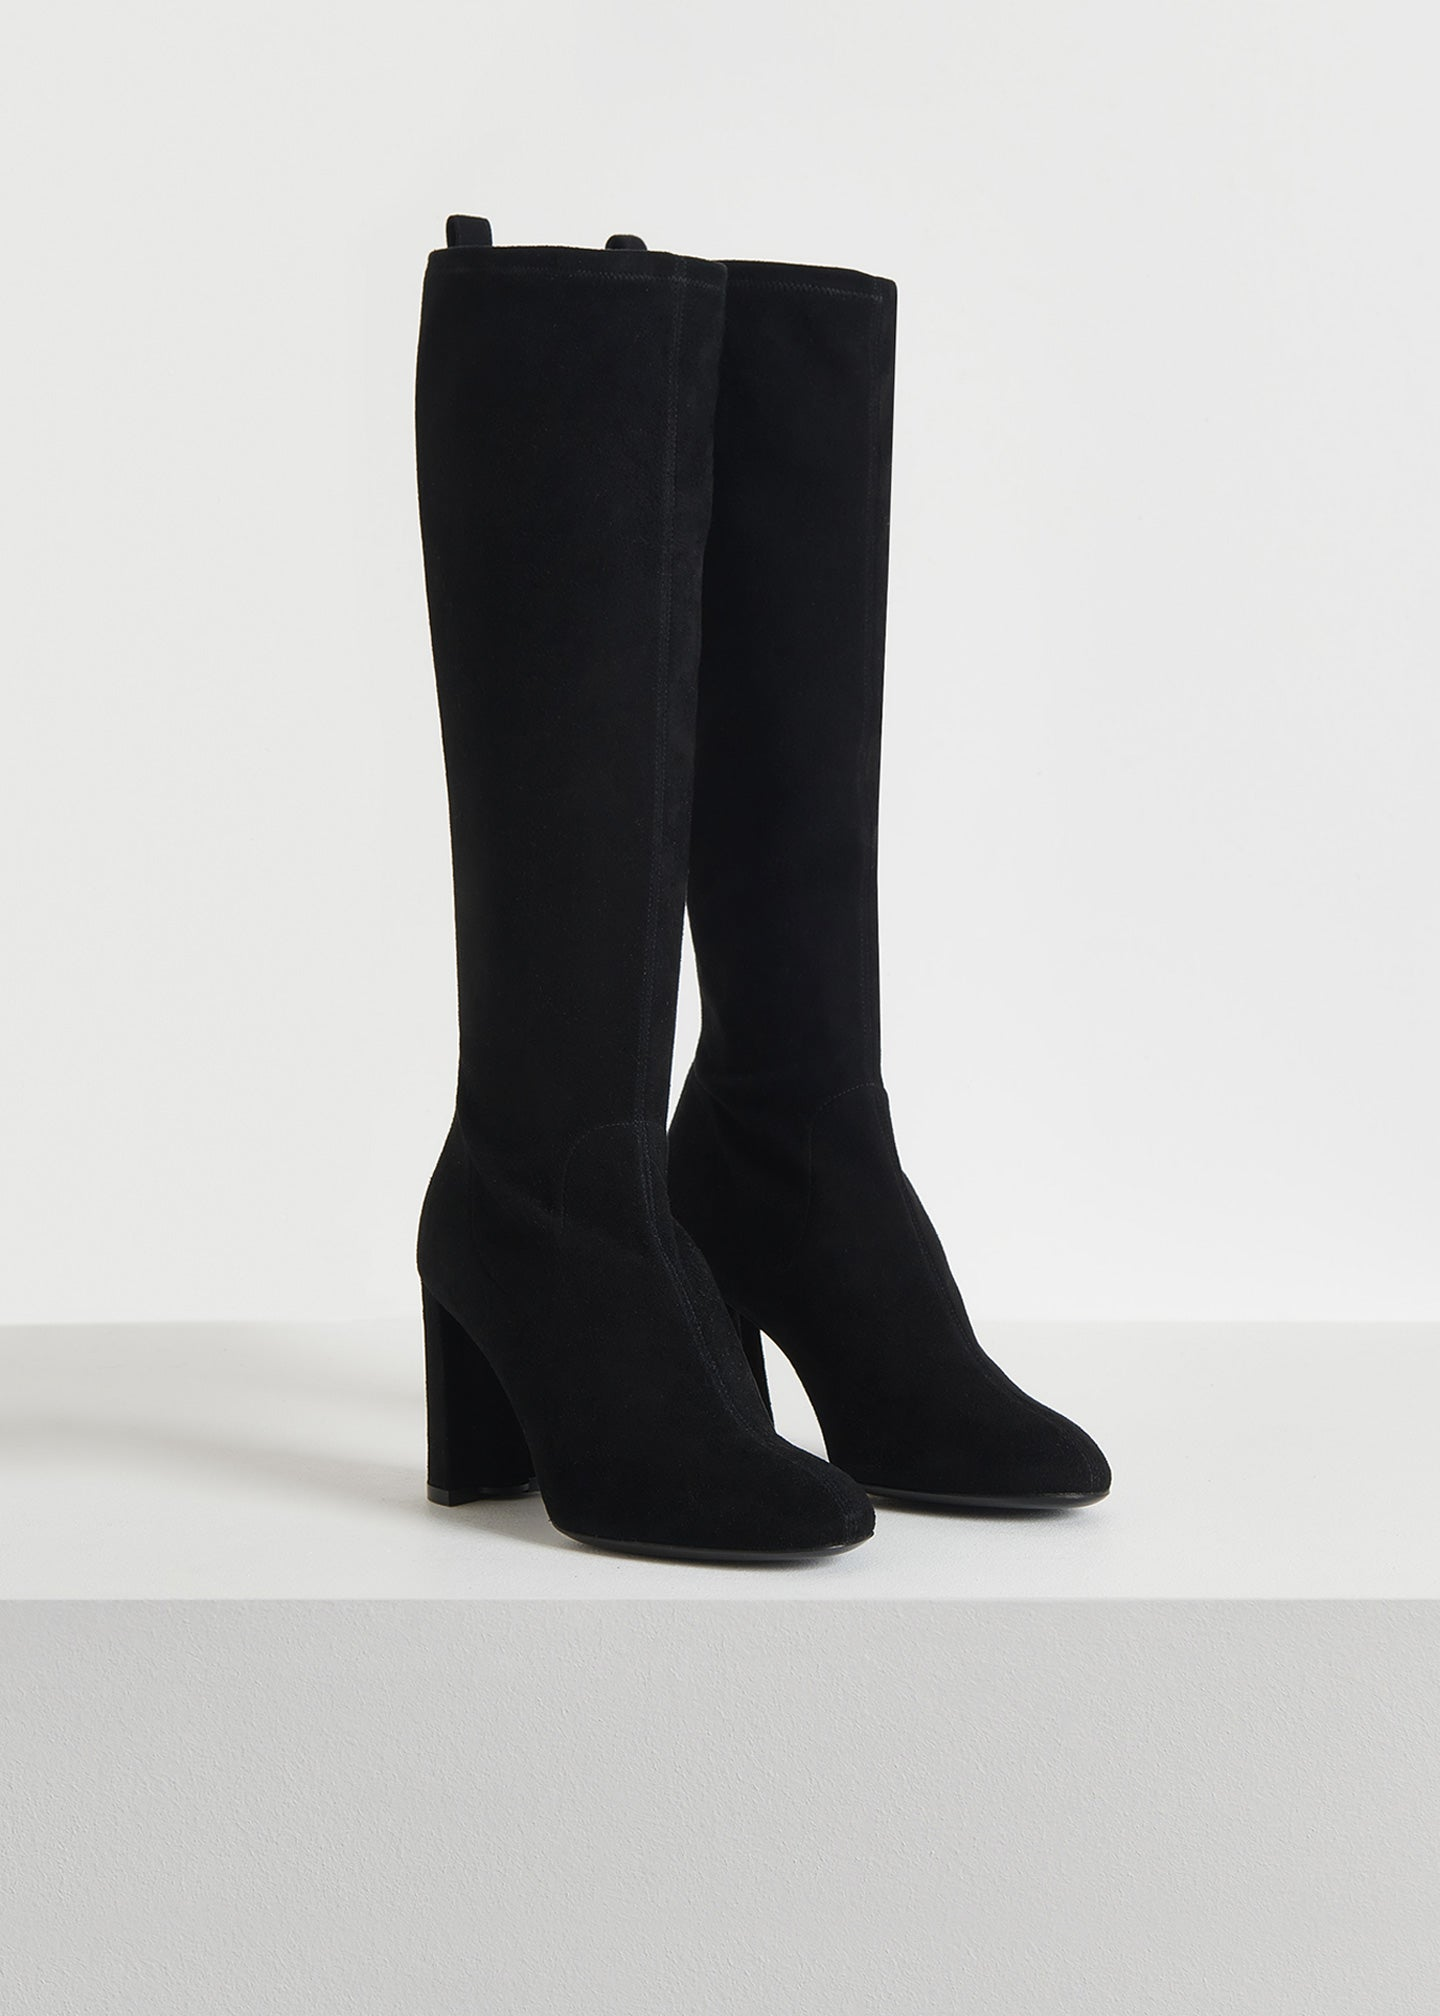 CO - Flash Sale Stretch Boot in Suede - Black